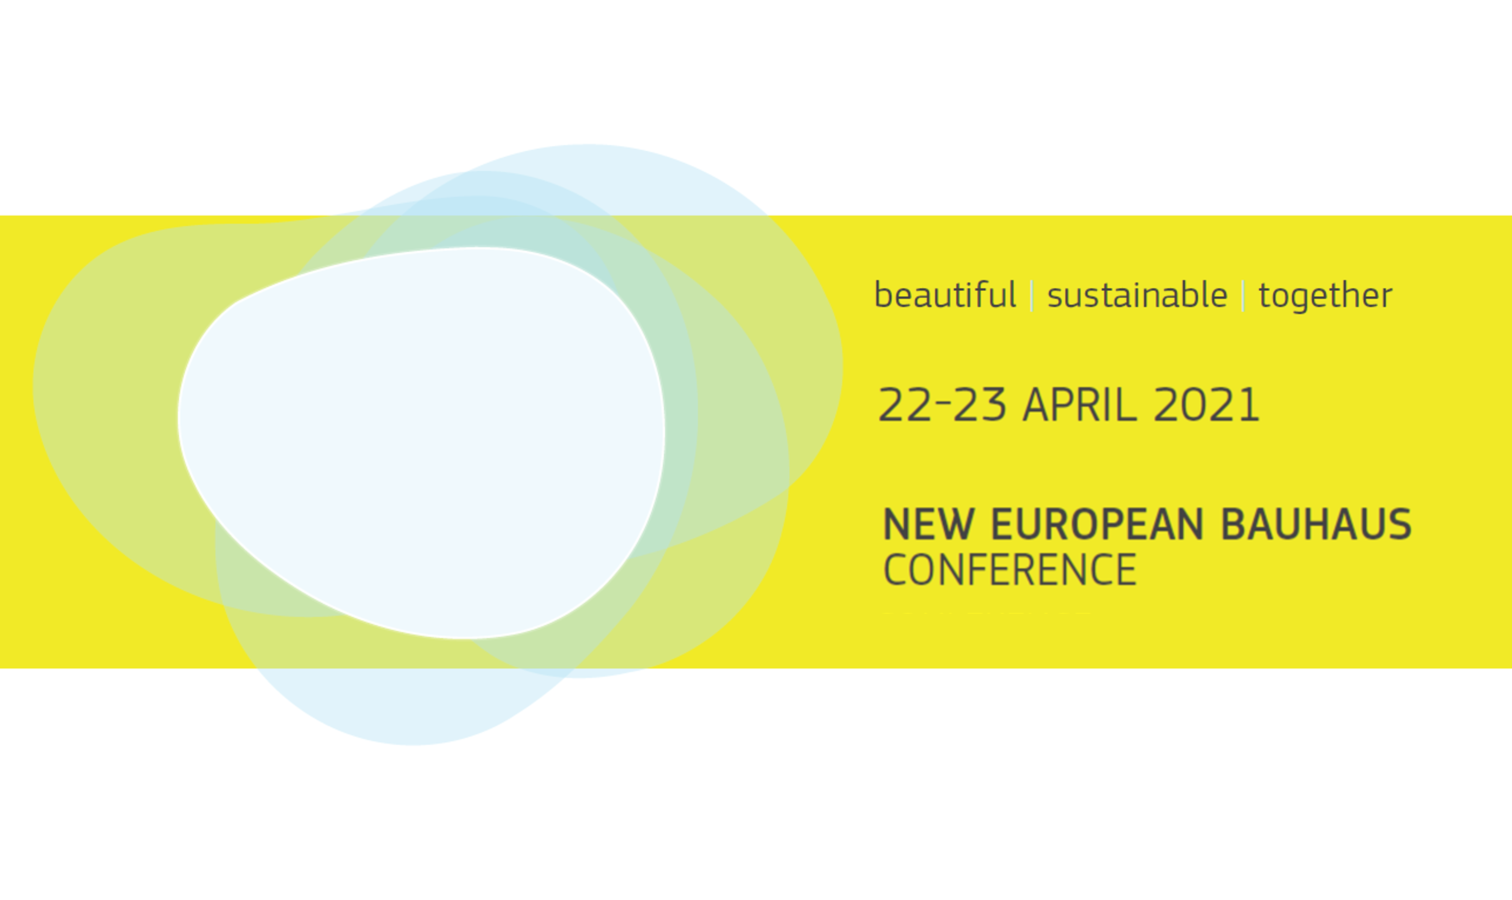 New European Bauhaus Conference with opening remarks by the Portuguese Prime-Minister António Costa